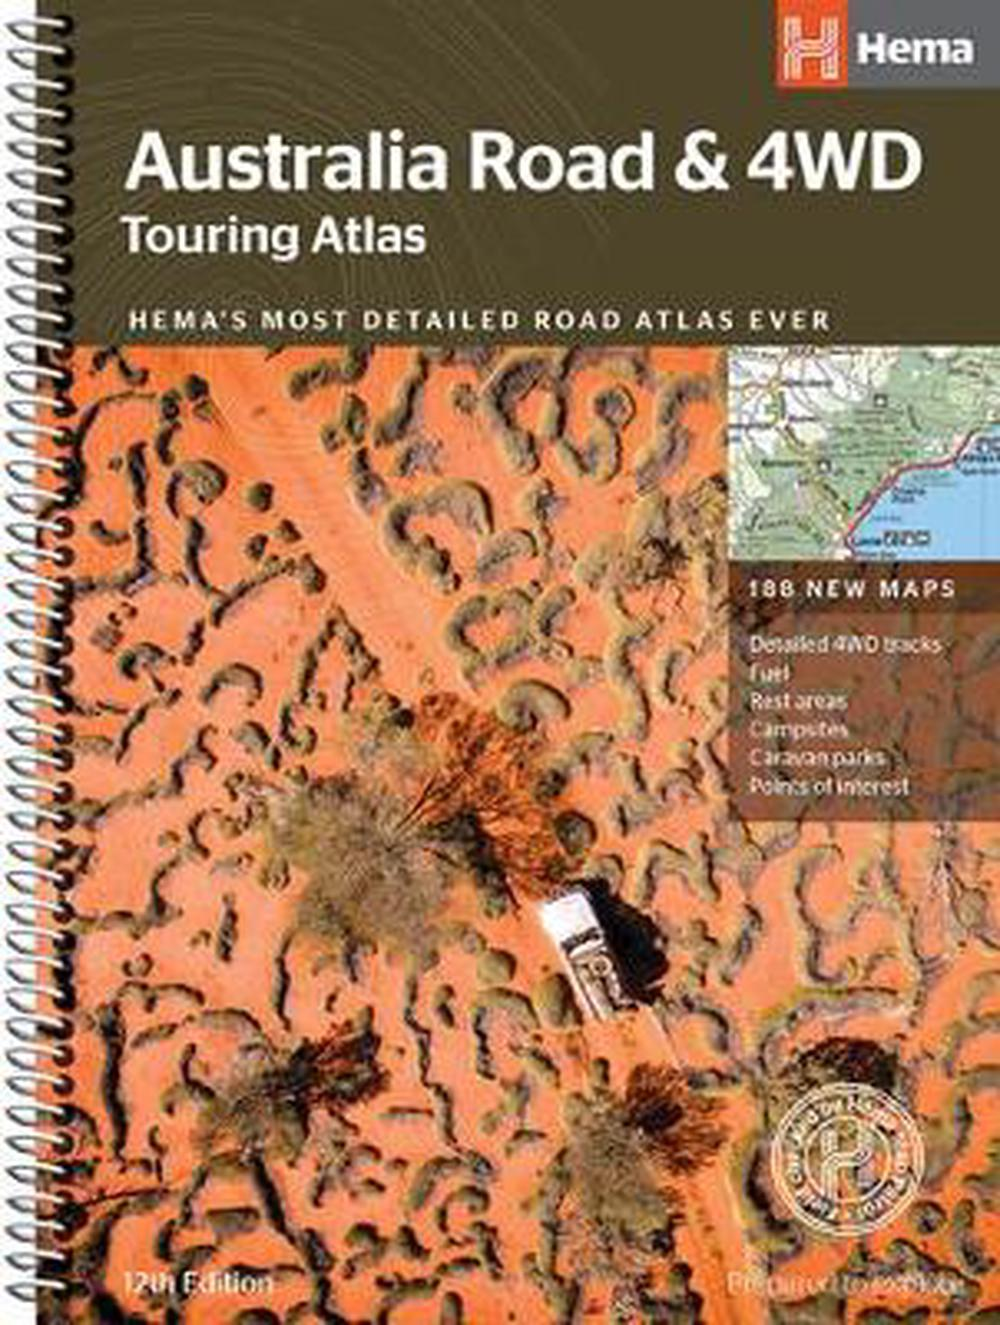 Australia Road & 4WD Atlas Touring Atlas